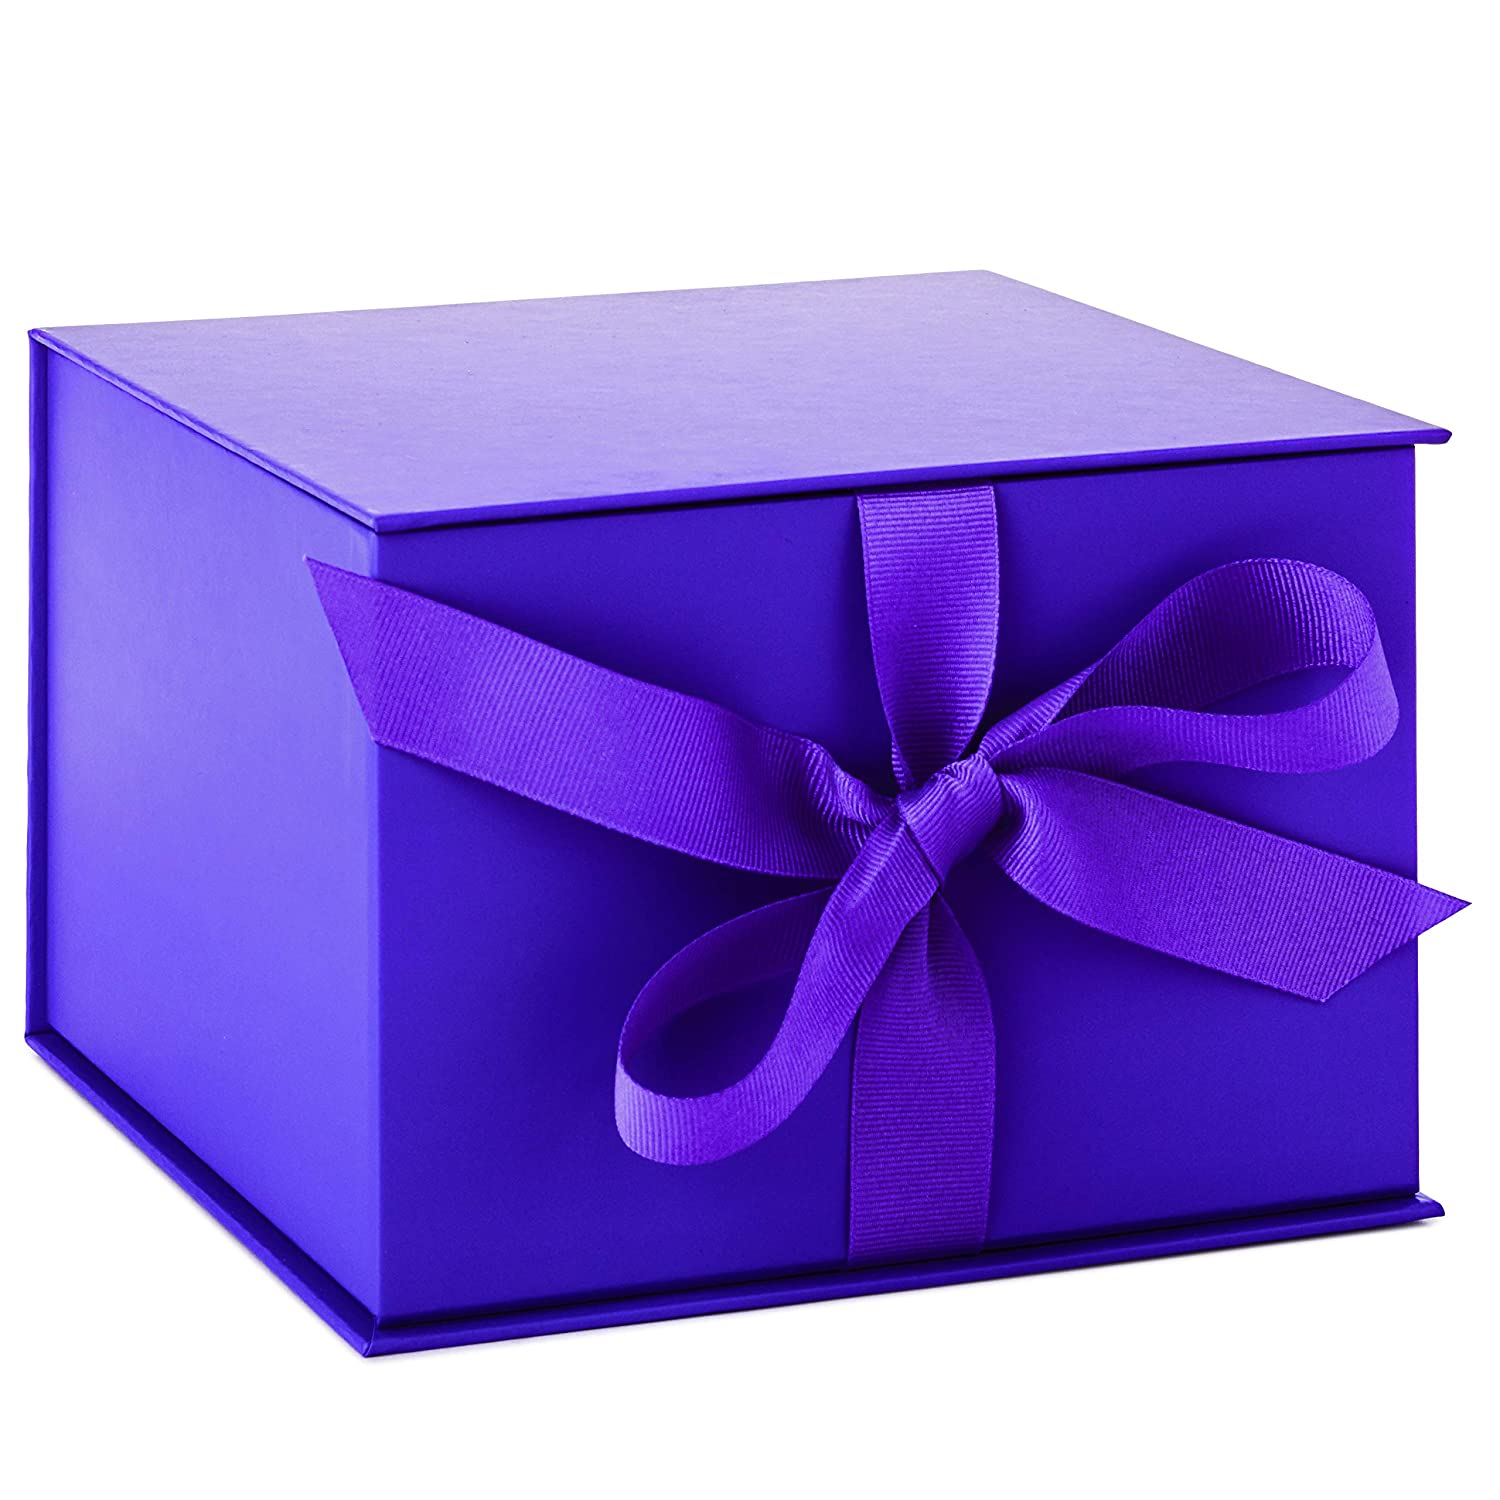 Amazon.com Hallmark Large Purple Gift Box with Lid and Shredded Paper Fill Kitchen u0026 Dining  sc 1 st  Amazon.com & Amazon.com: Hallmark Large Purple Gift Box with Lid and Shredded ...